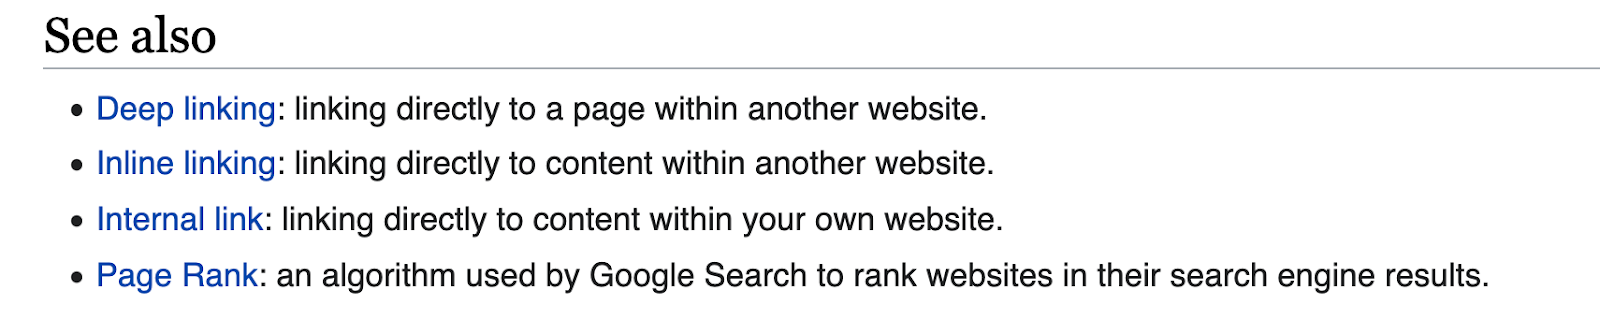 see also section for link building on wikipedia